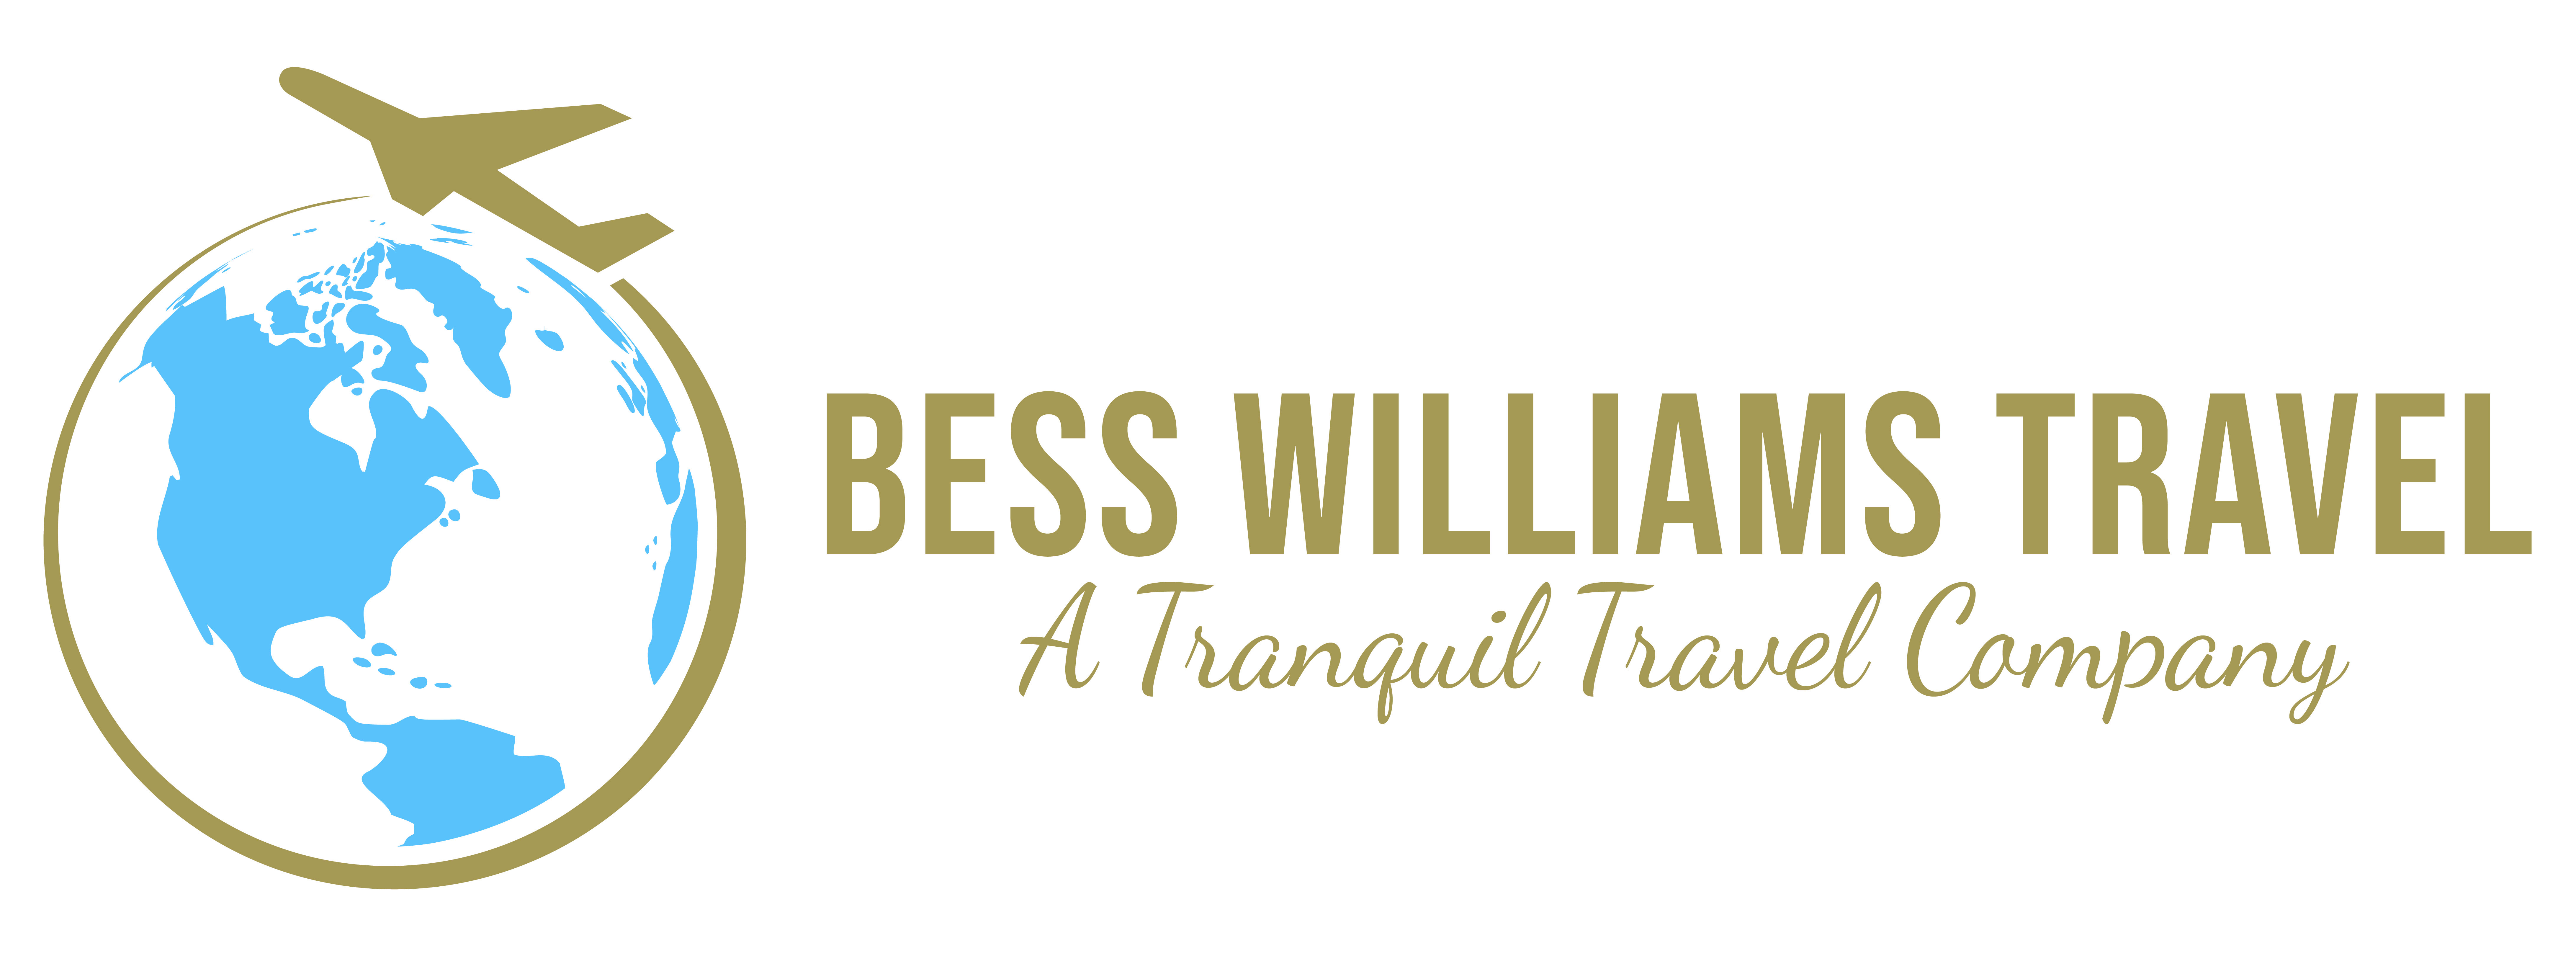 Bess Williams Travel  ATC